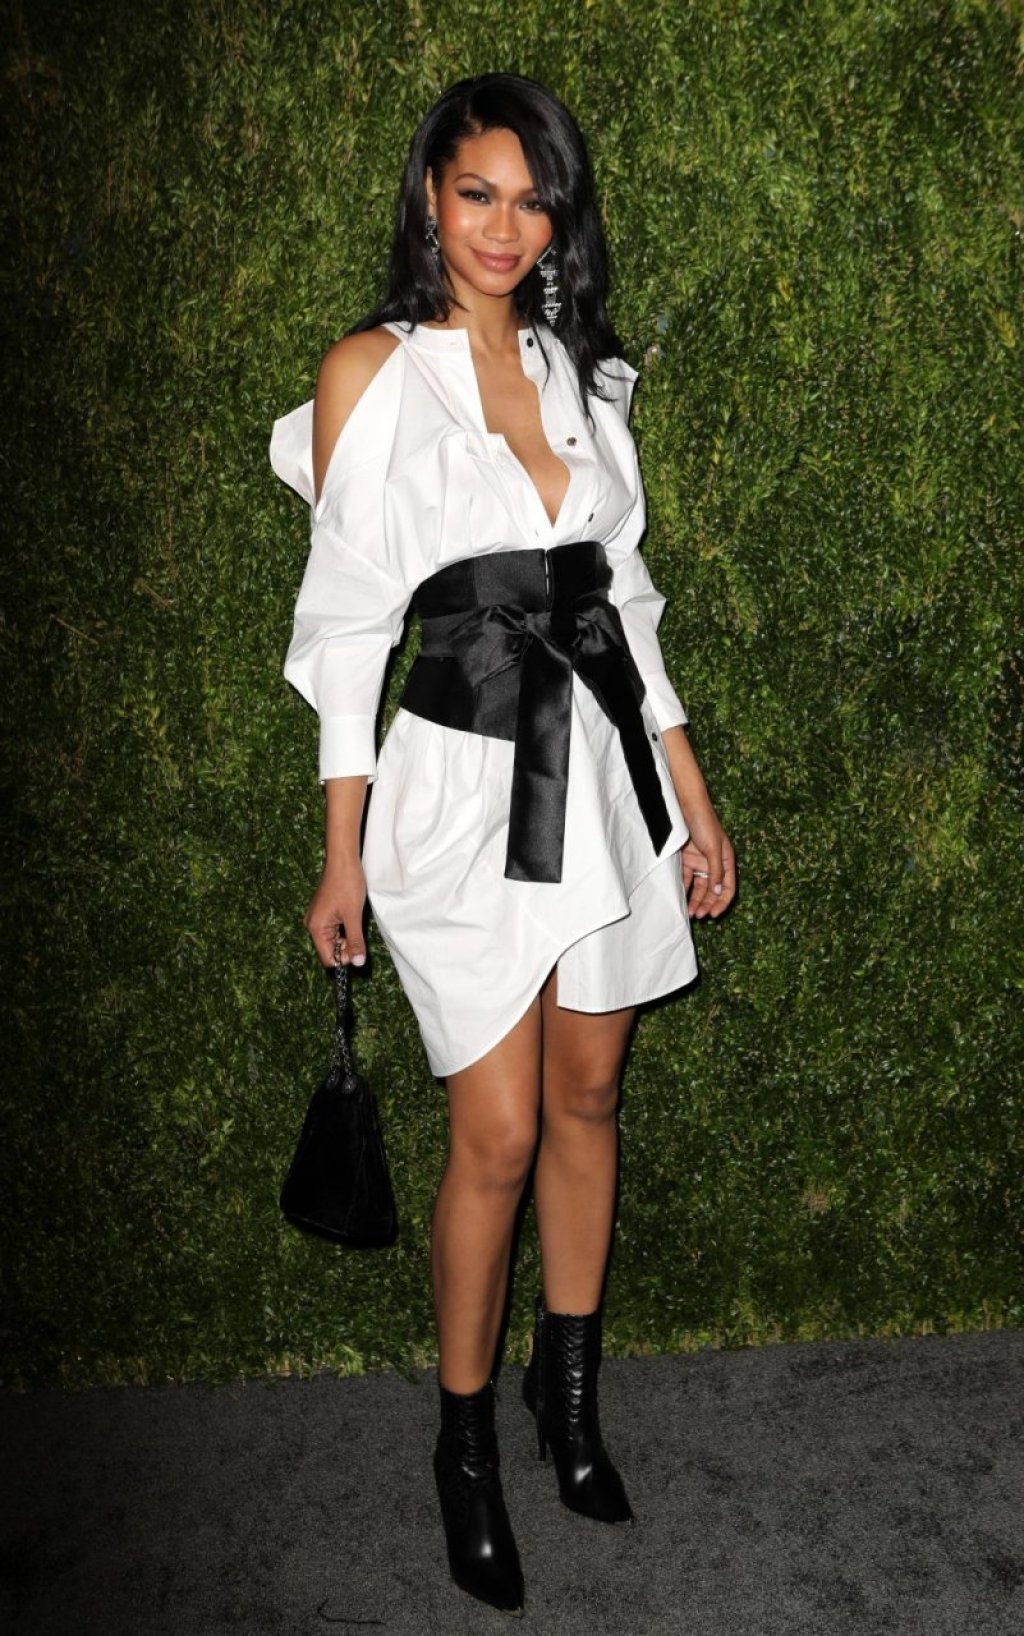 Chanel Iman Nip Slip (95 Photos)